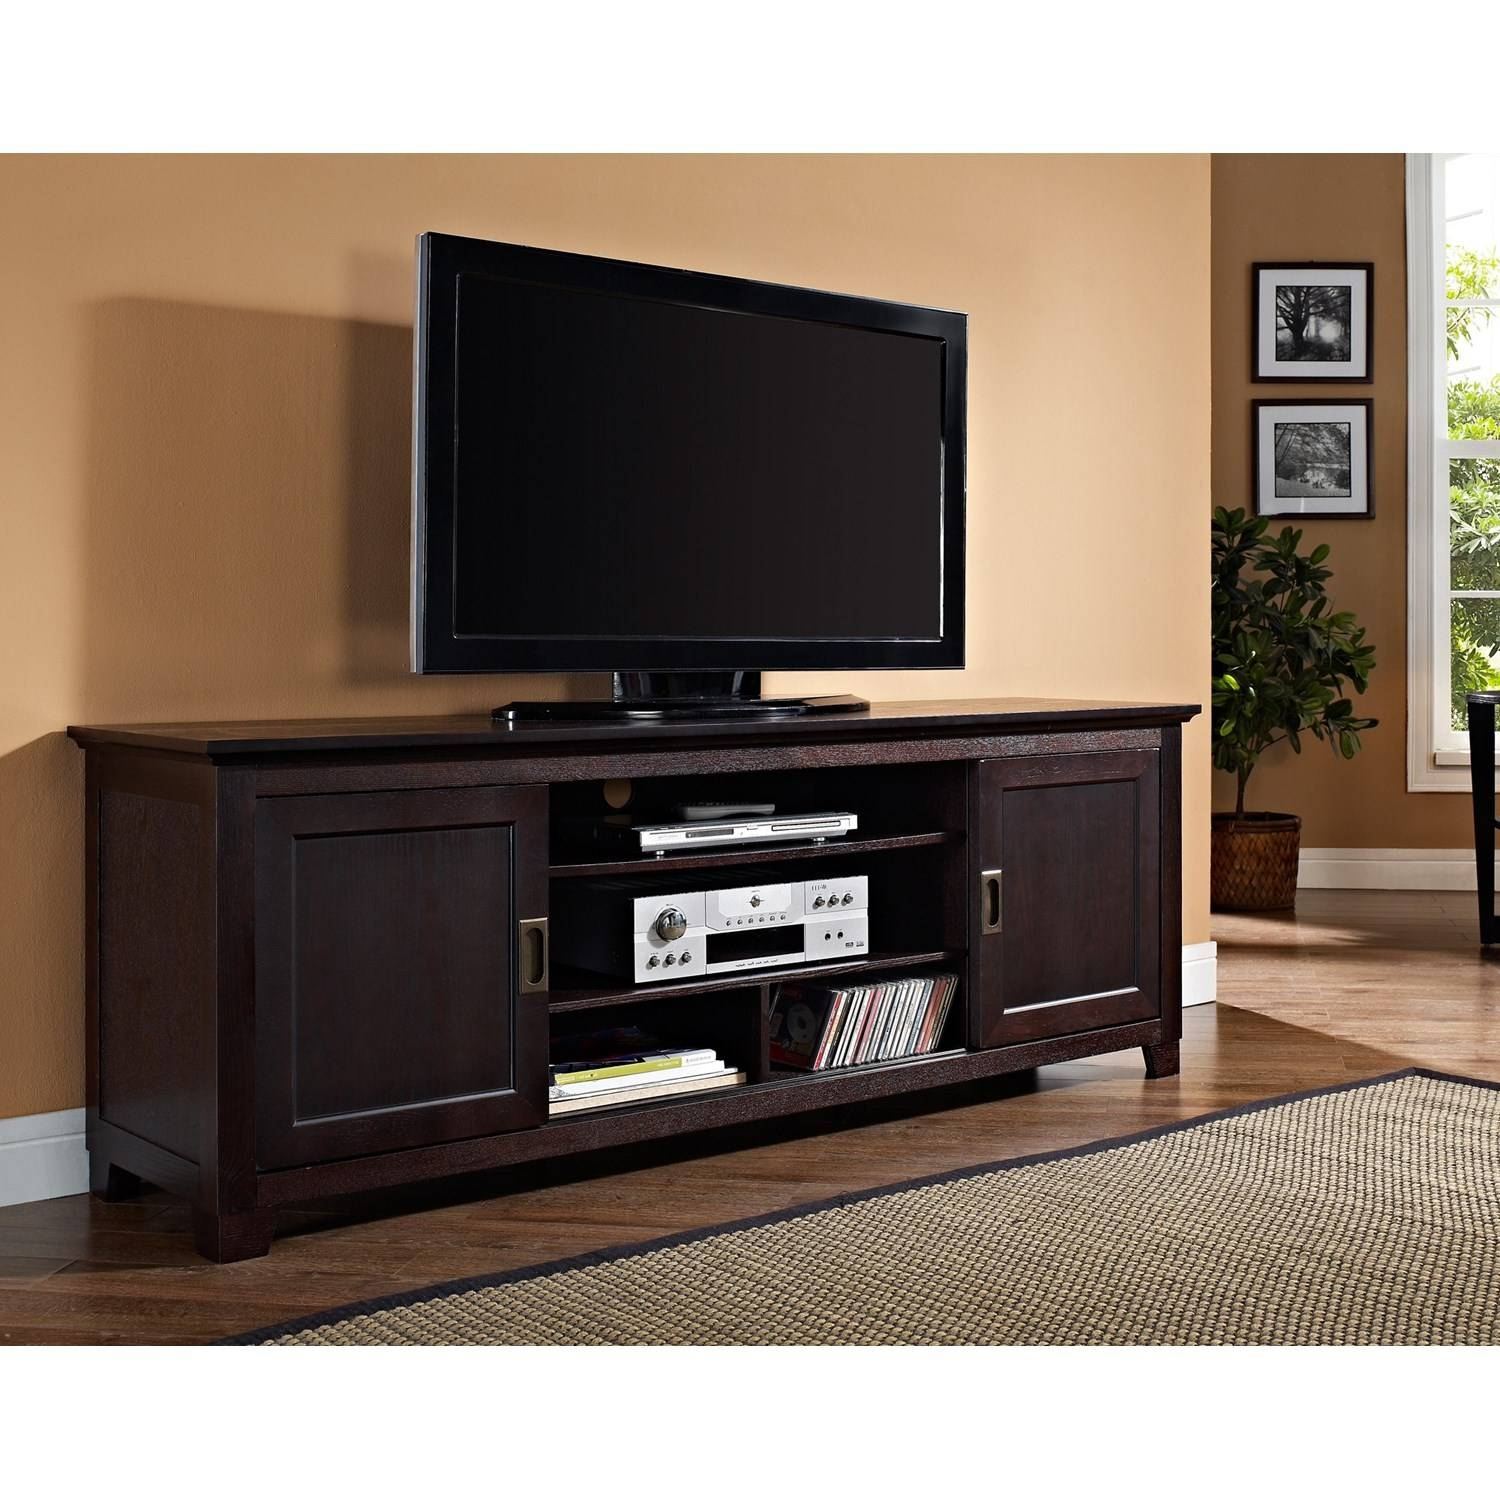 "Walker Edison 70"" Wide Espresso Wood Tv Stand Console With Sliding for Expresso Tv Stands (Image 14 of 15)"